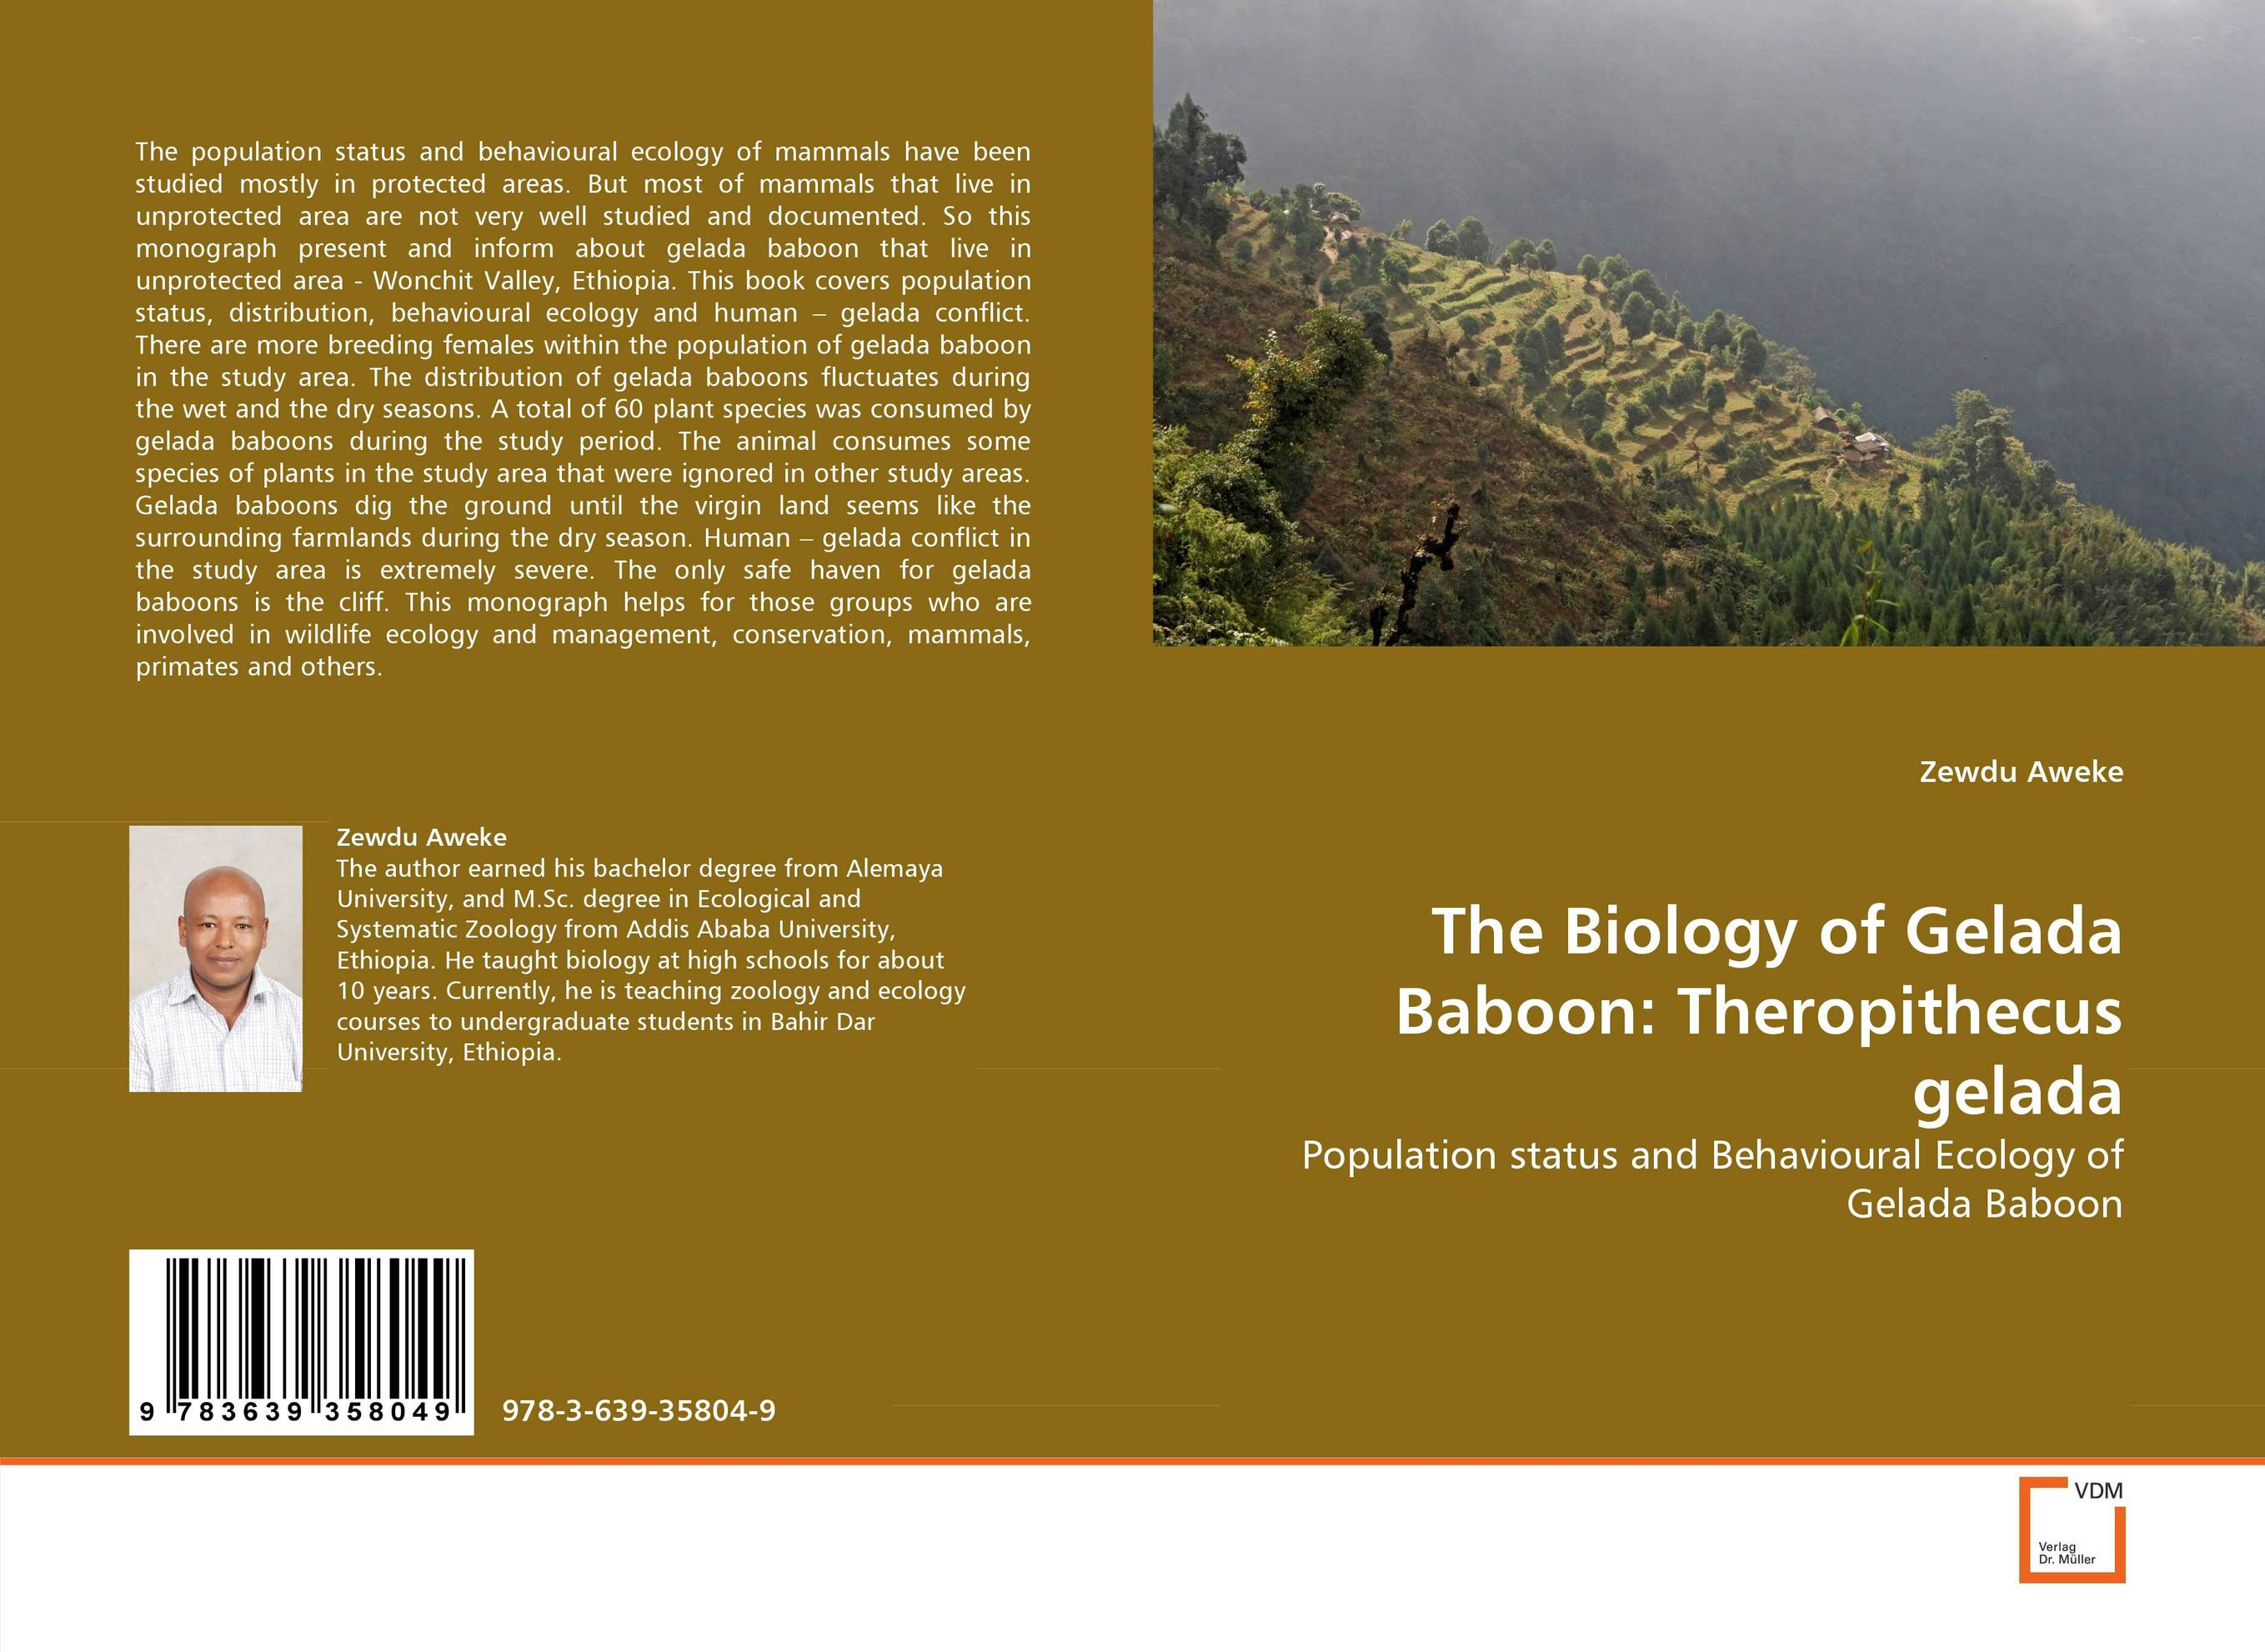 The Biology of Gelada Baboon: Theropithecus gelada the ecology and biology of nephrops norvegicus 64